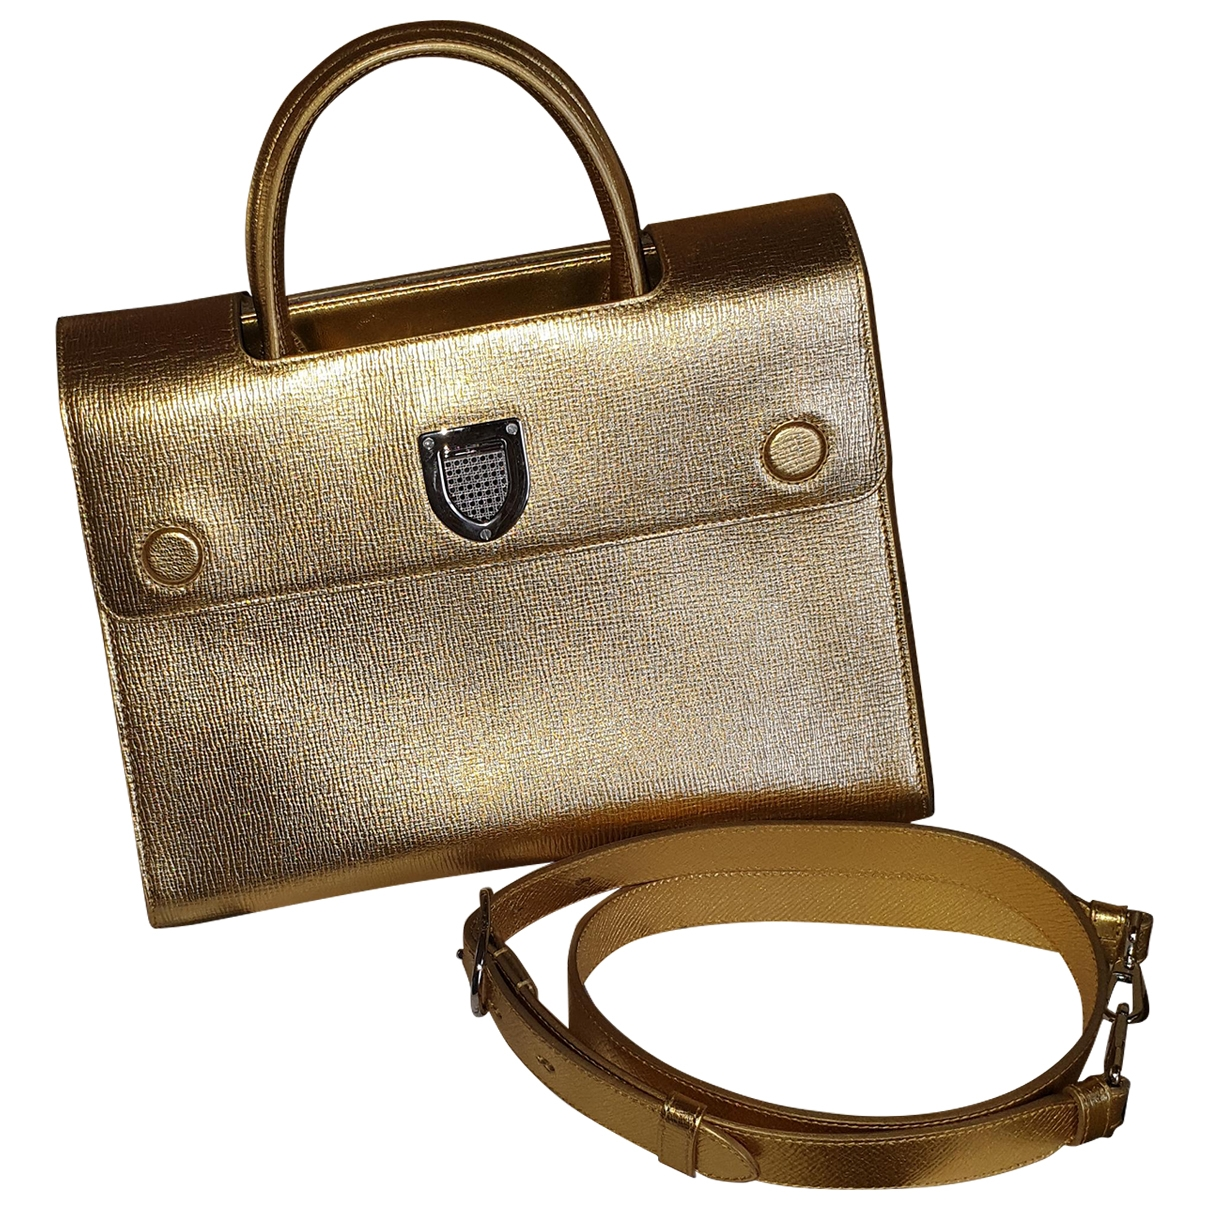 Dior Diorever Gold Patent leather handbag for Women \N